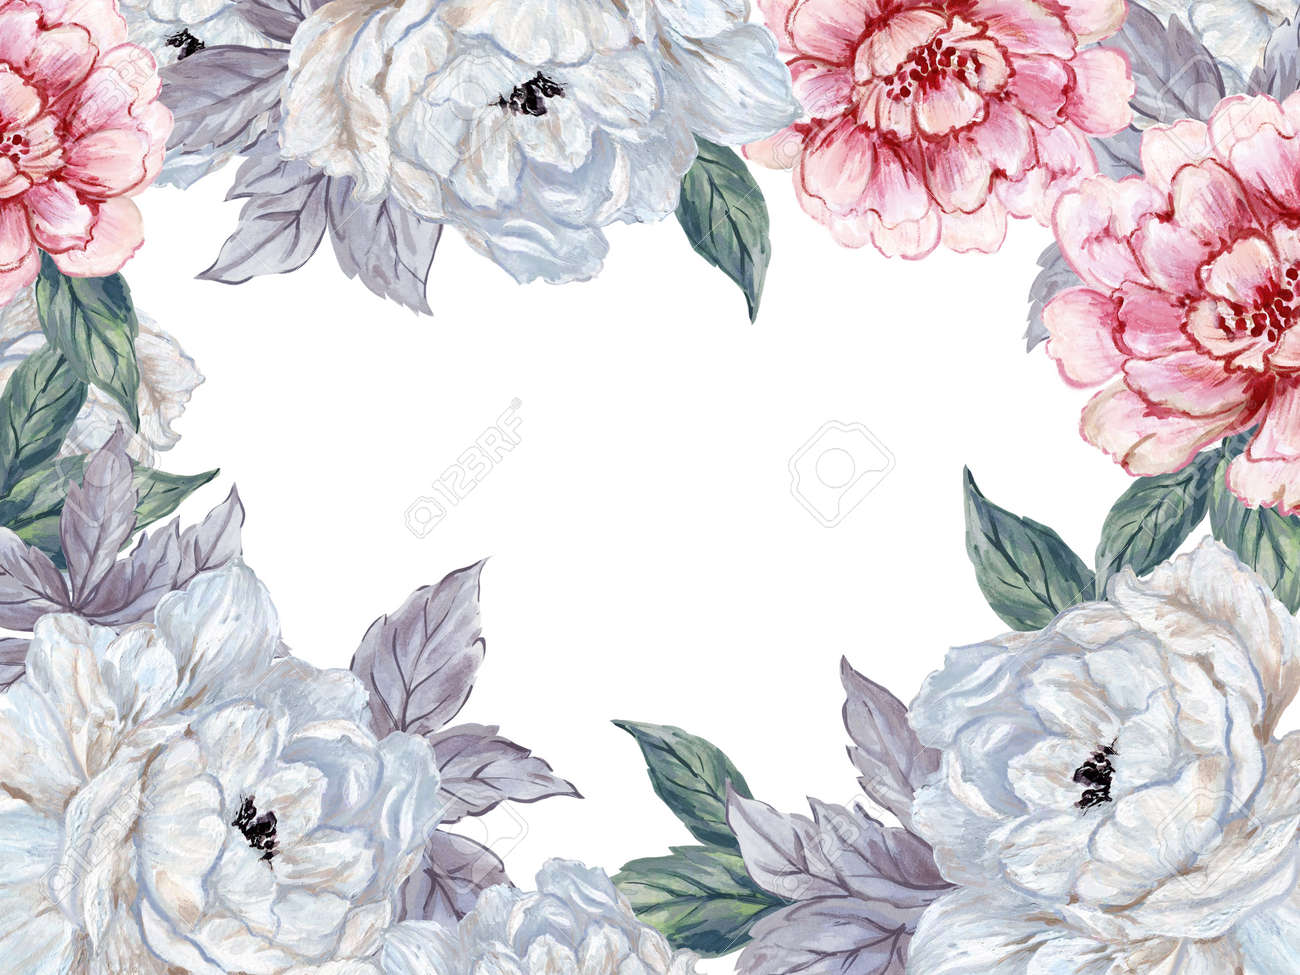 Hand Drawn Winter Season Asian Peonies And Ranunculus Flower Stock Photo Picture And Royalty Free Image Image 158681005